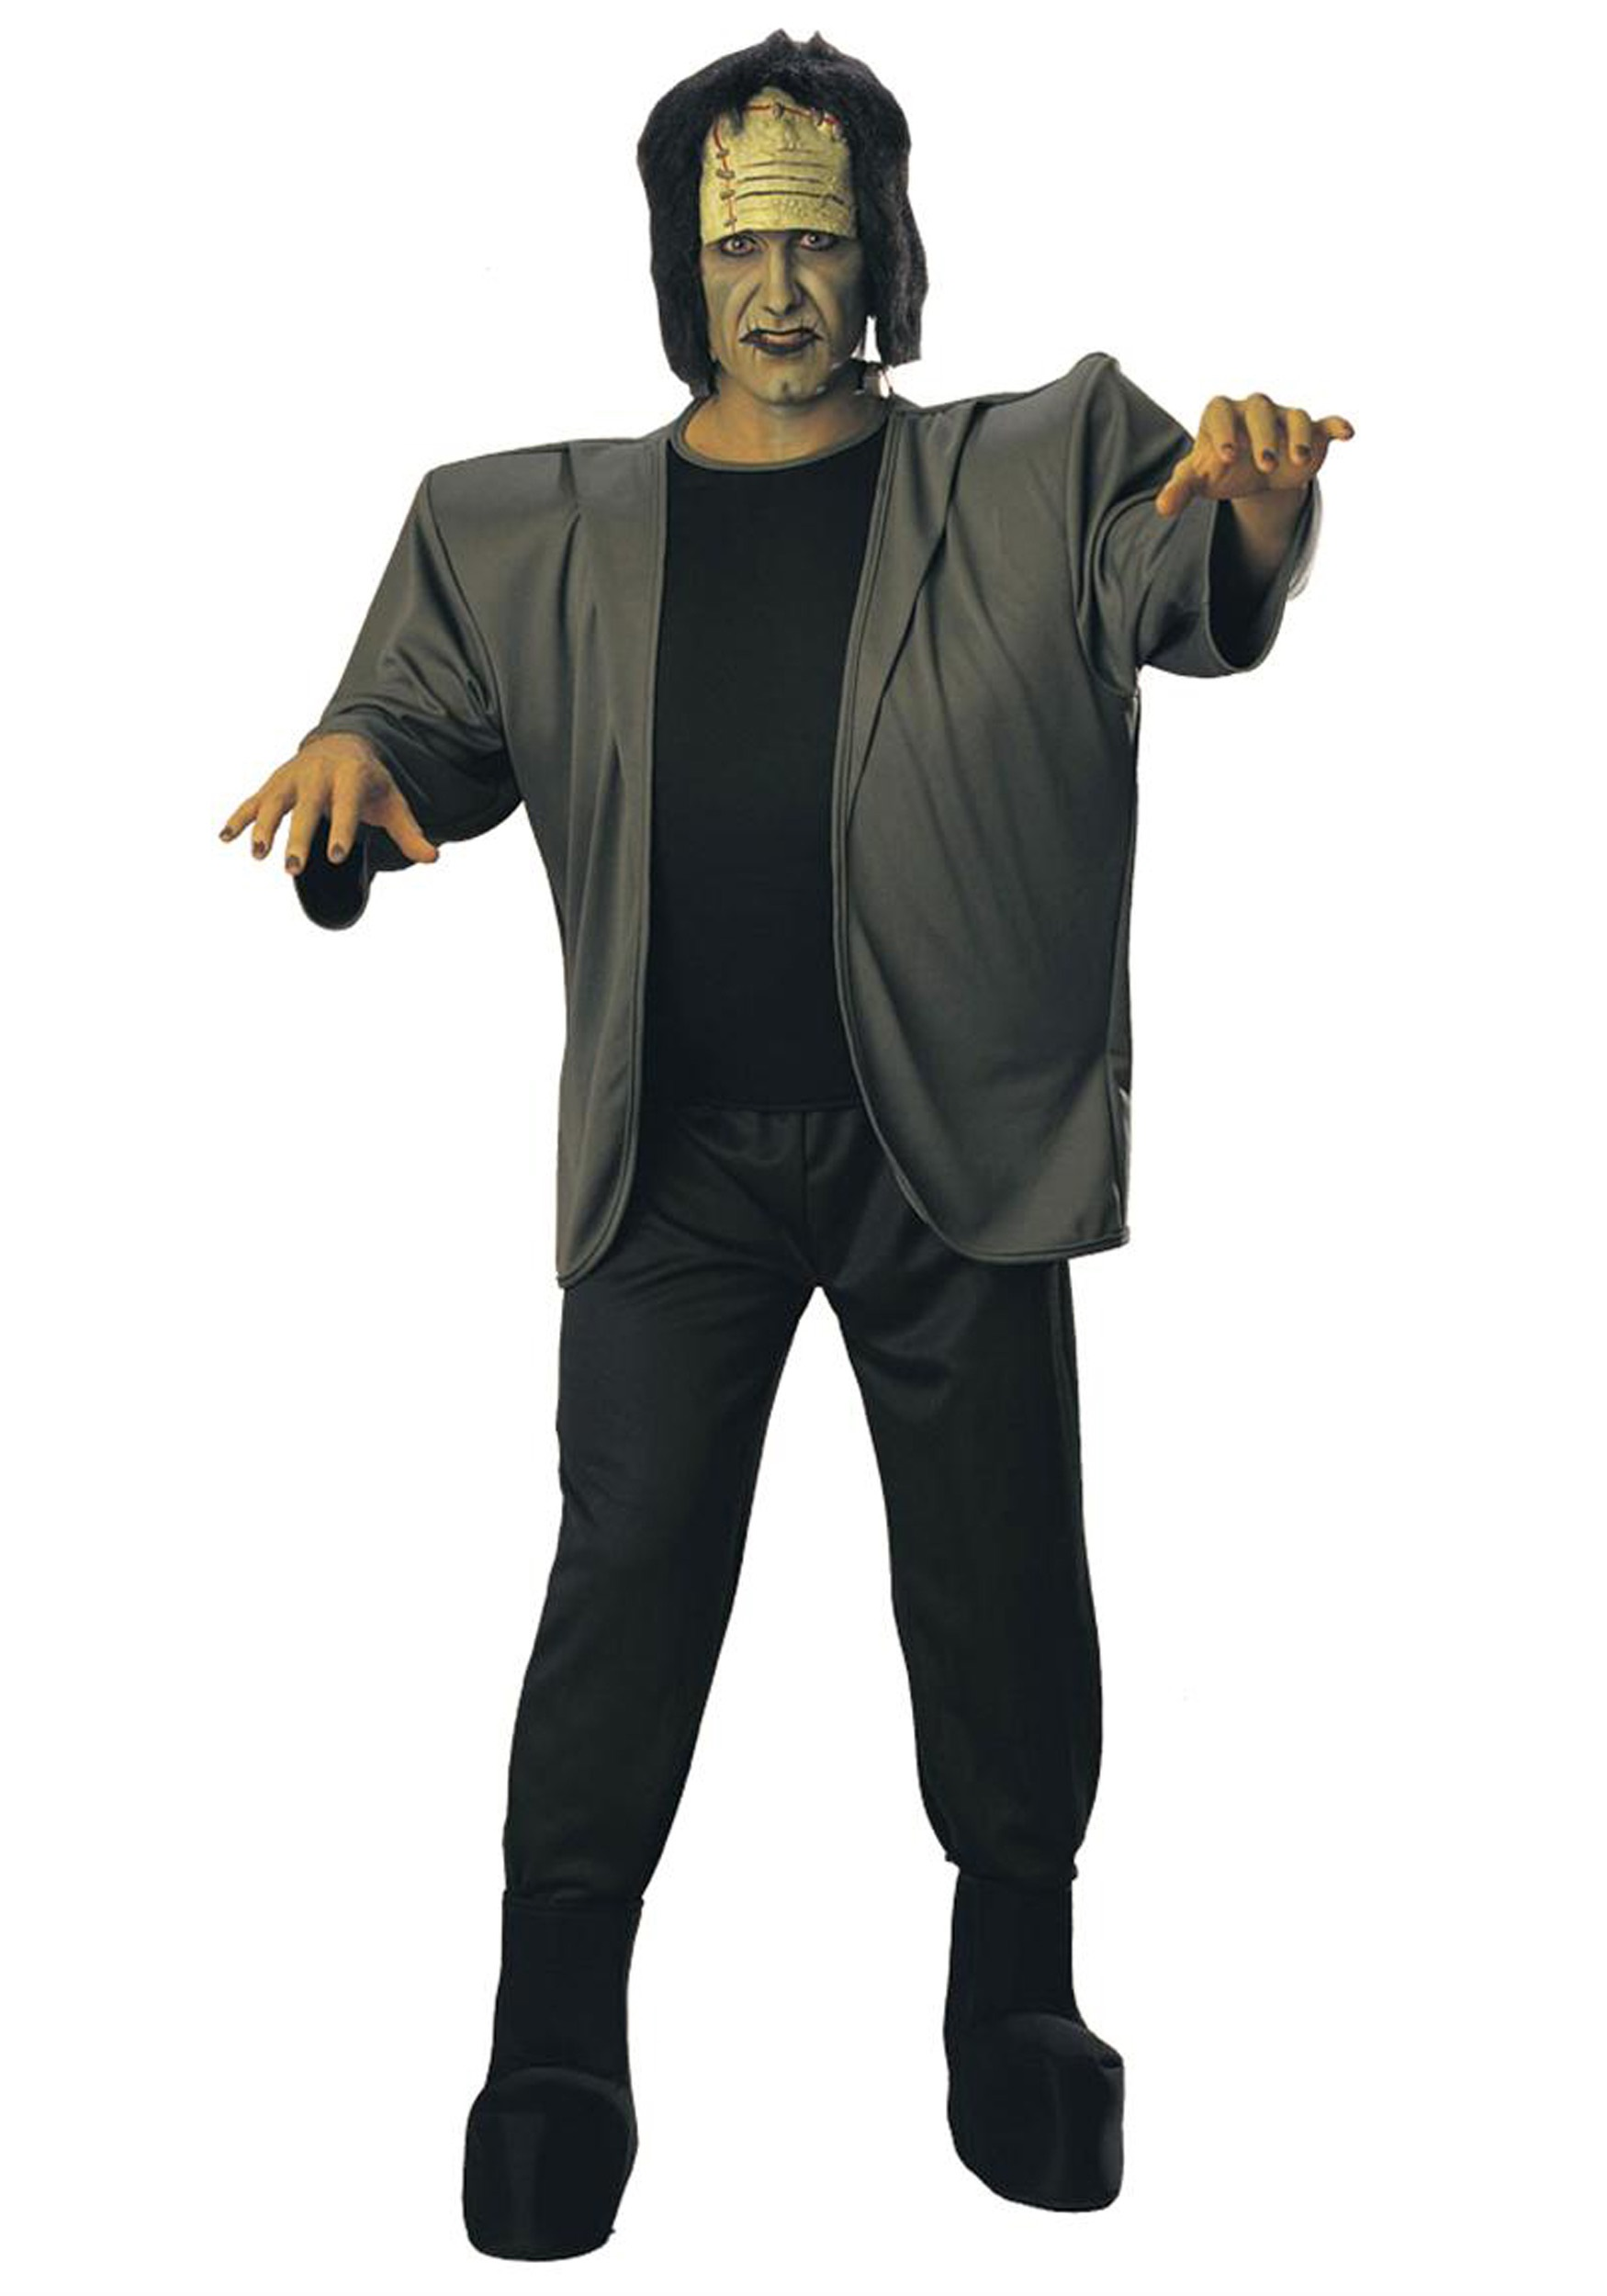 Frankenstein Costumes - Classic Scary Monster Halloween Costumes